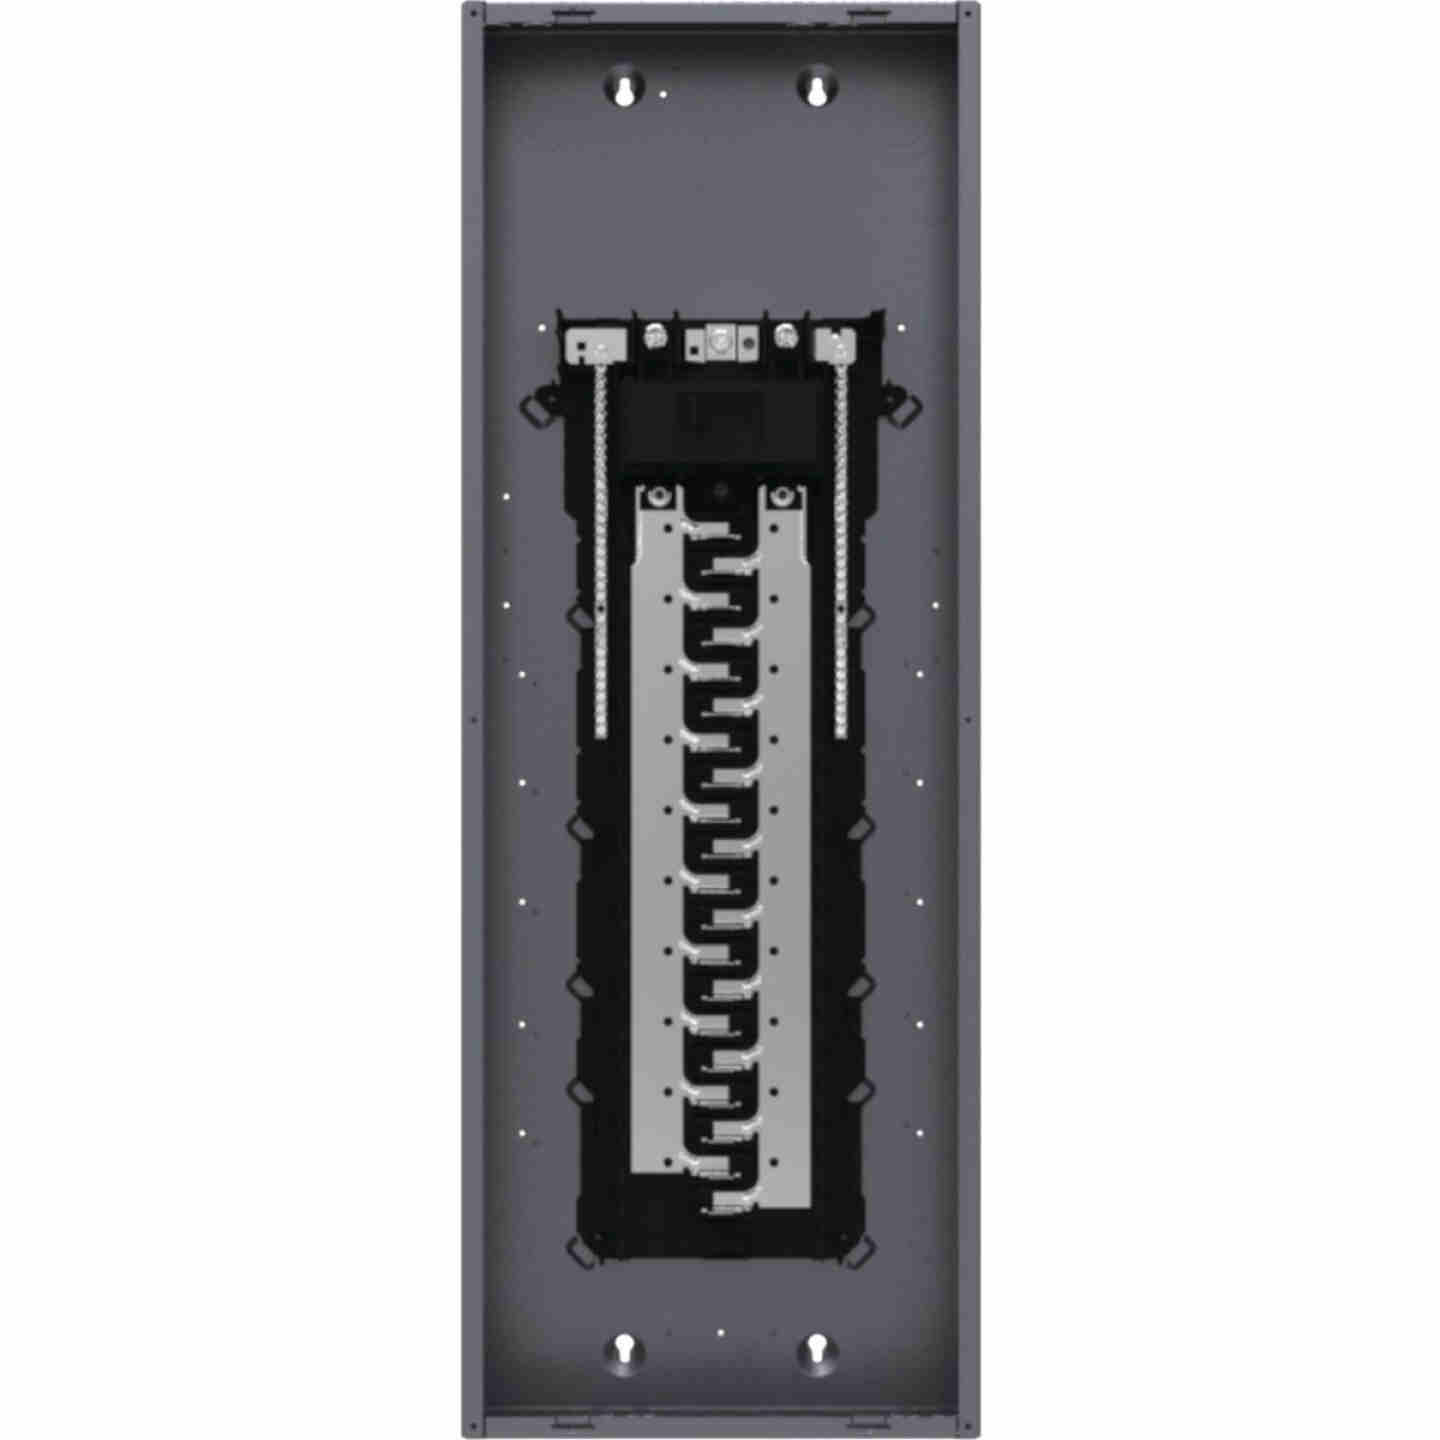 Square D Homeline 200A 40-Space 80-Pole Indoor Meter Breaker Panel Image 3